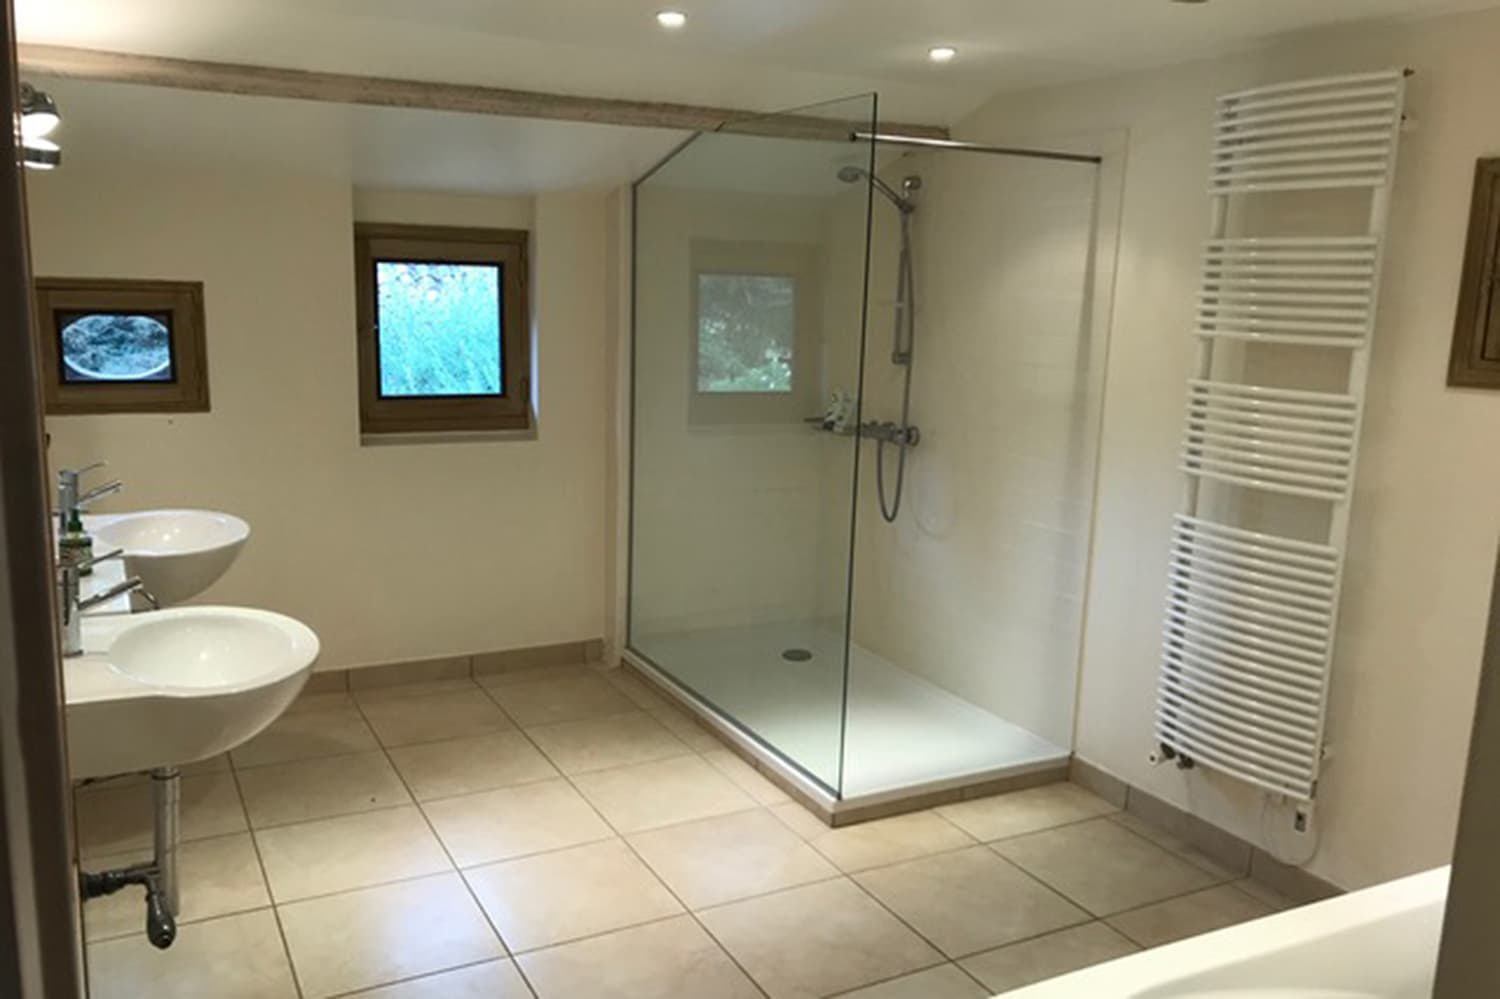 Bathroom in Carsac-Aillac rental home